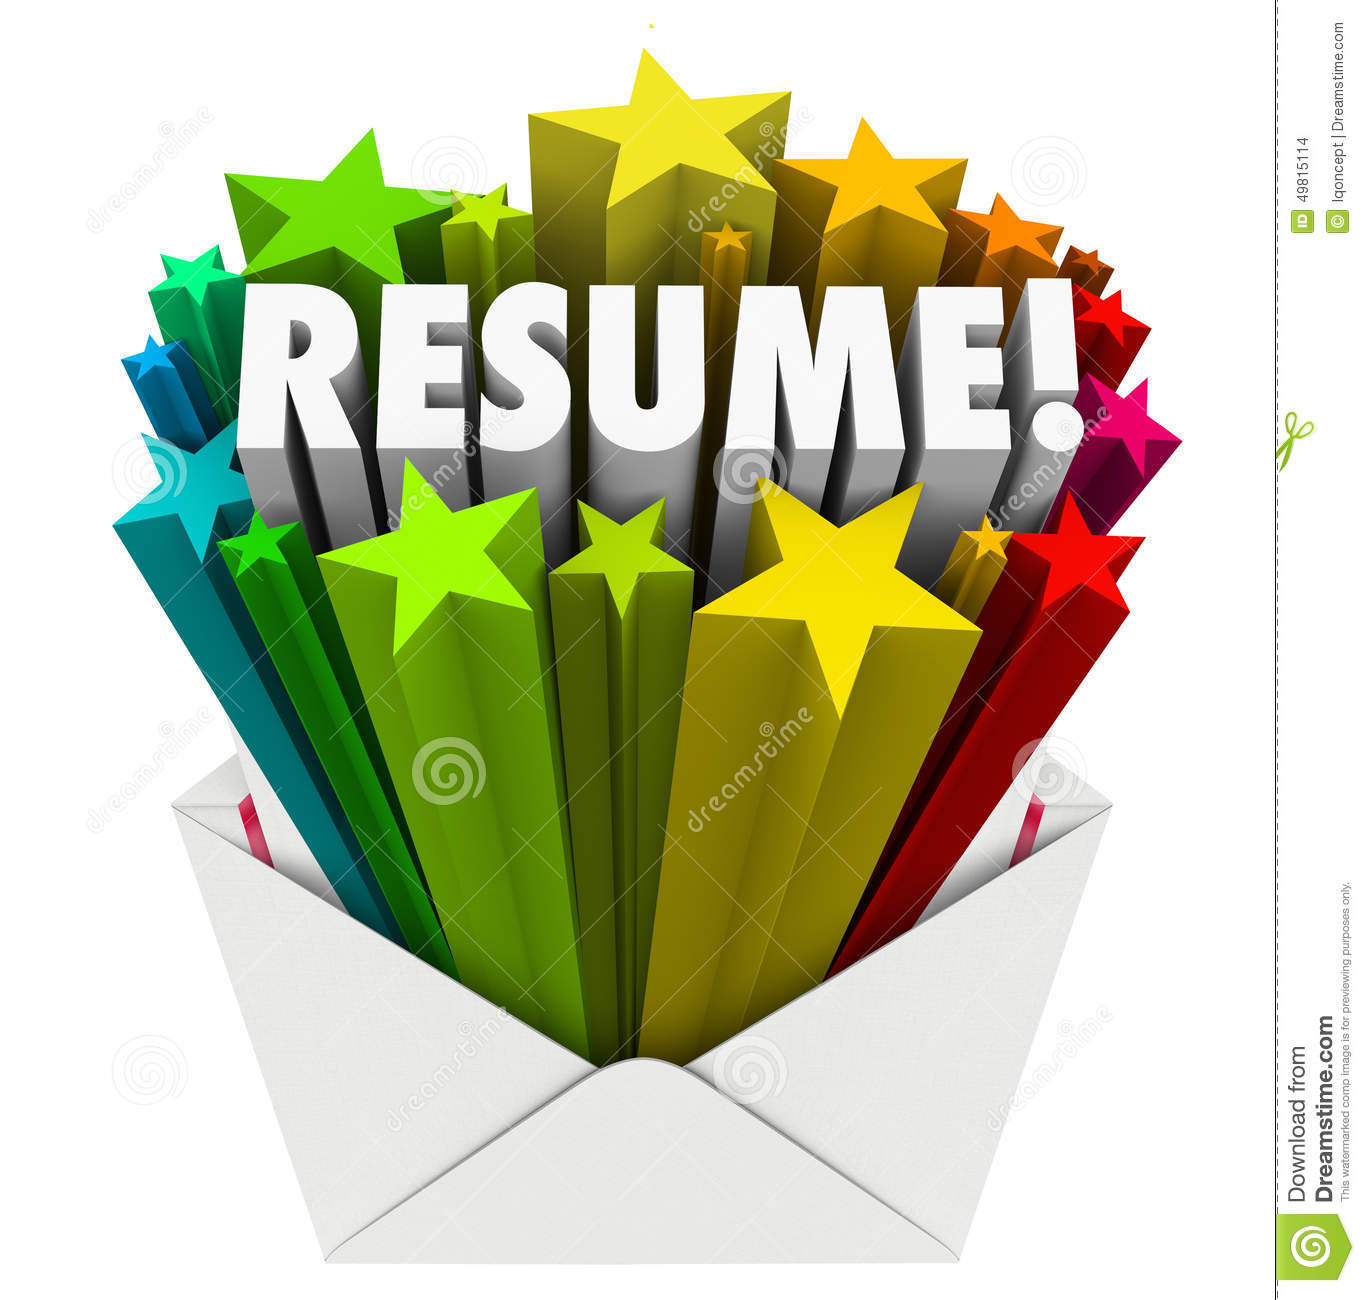 resume word stars open envelope promote your skills knowledge ex stock illustration